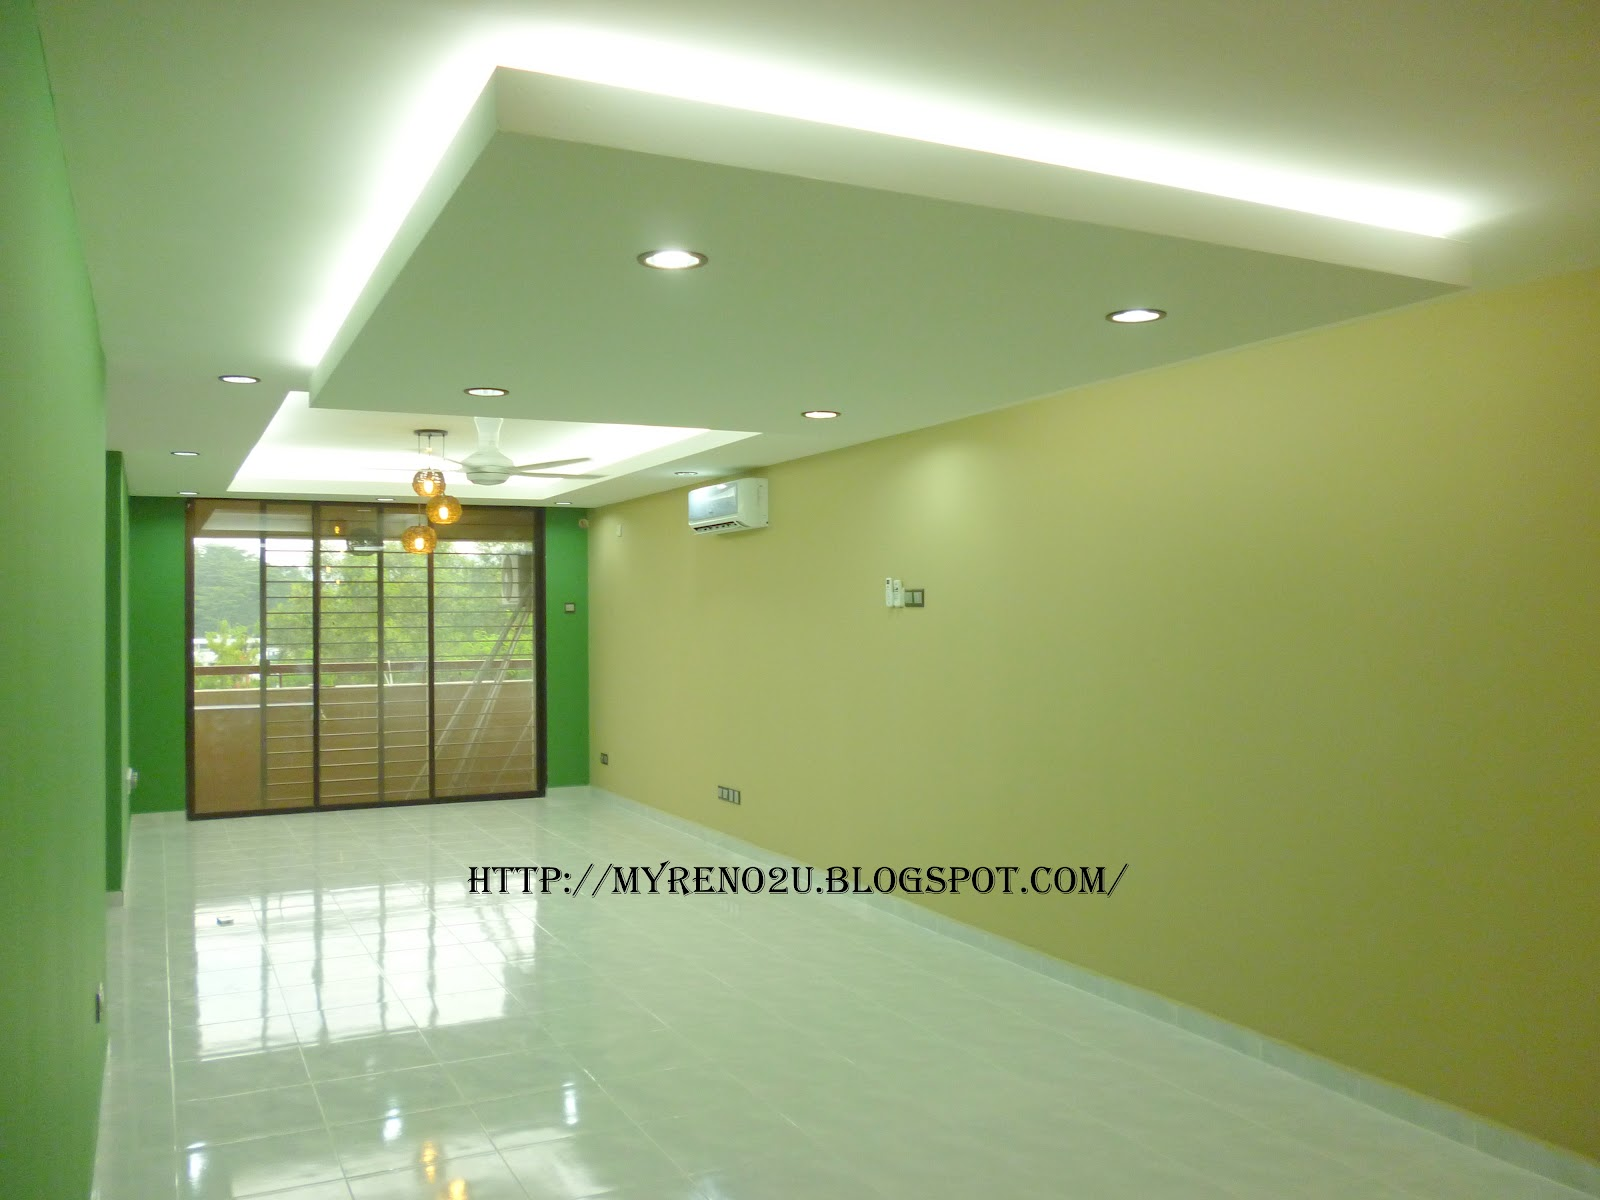 Renovate Rumah Wangsa Maju on Electrical Wiring Diagram